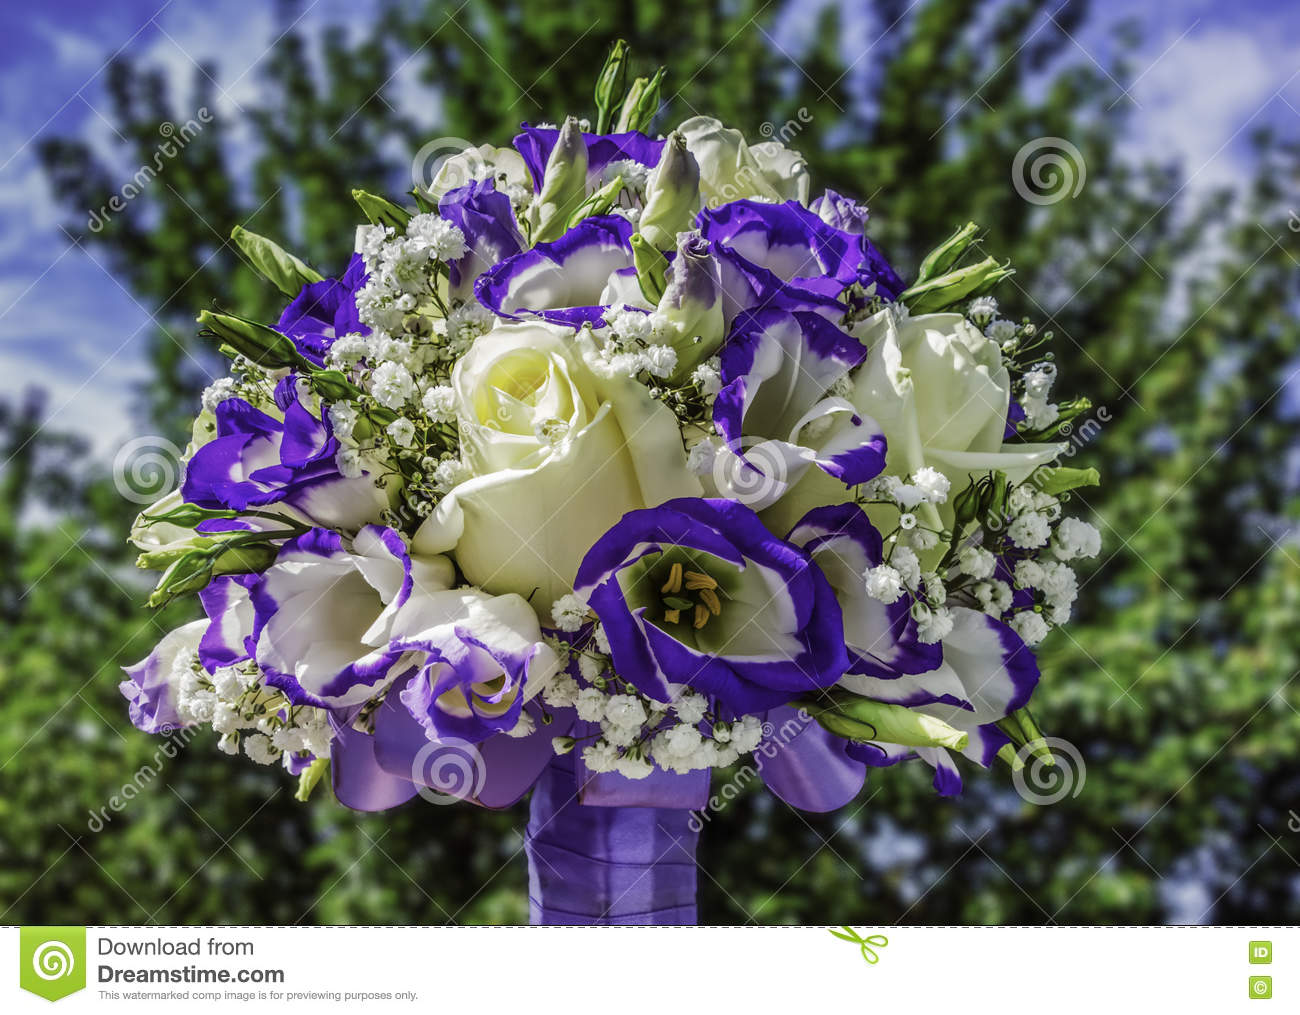 Wedding Bouquet With Yellow And Purple Flowers For Bride Stock Photo